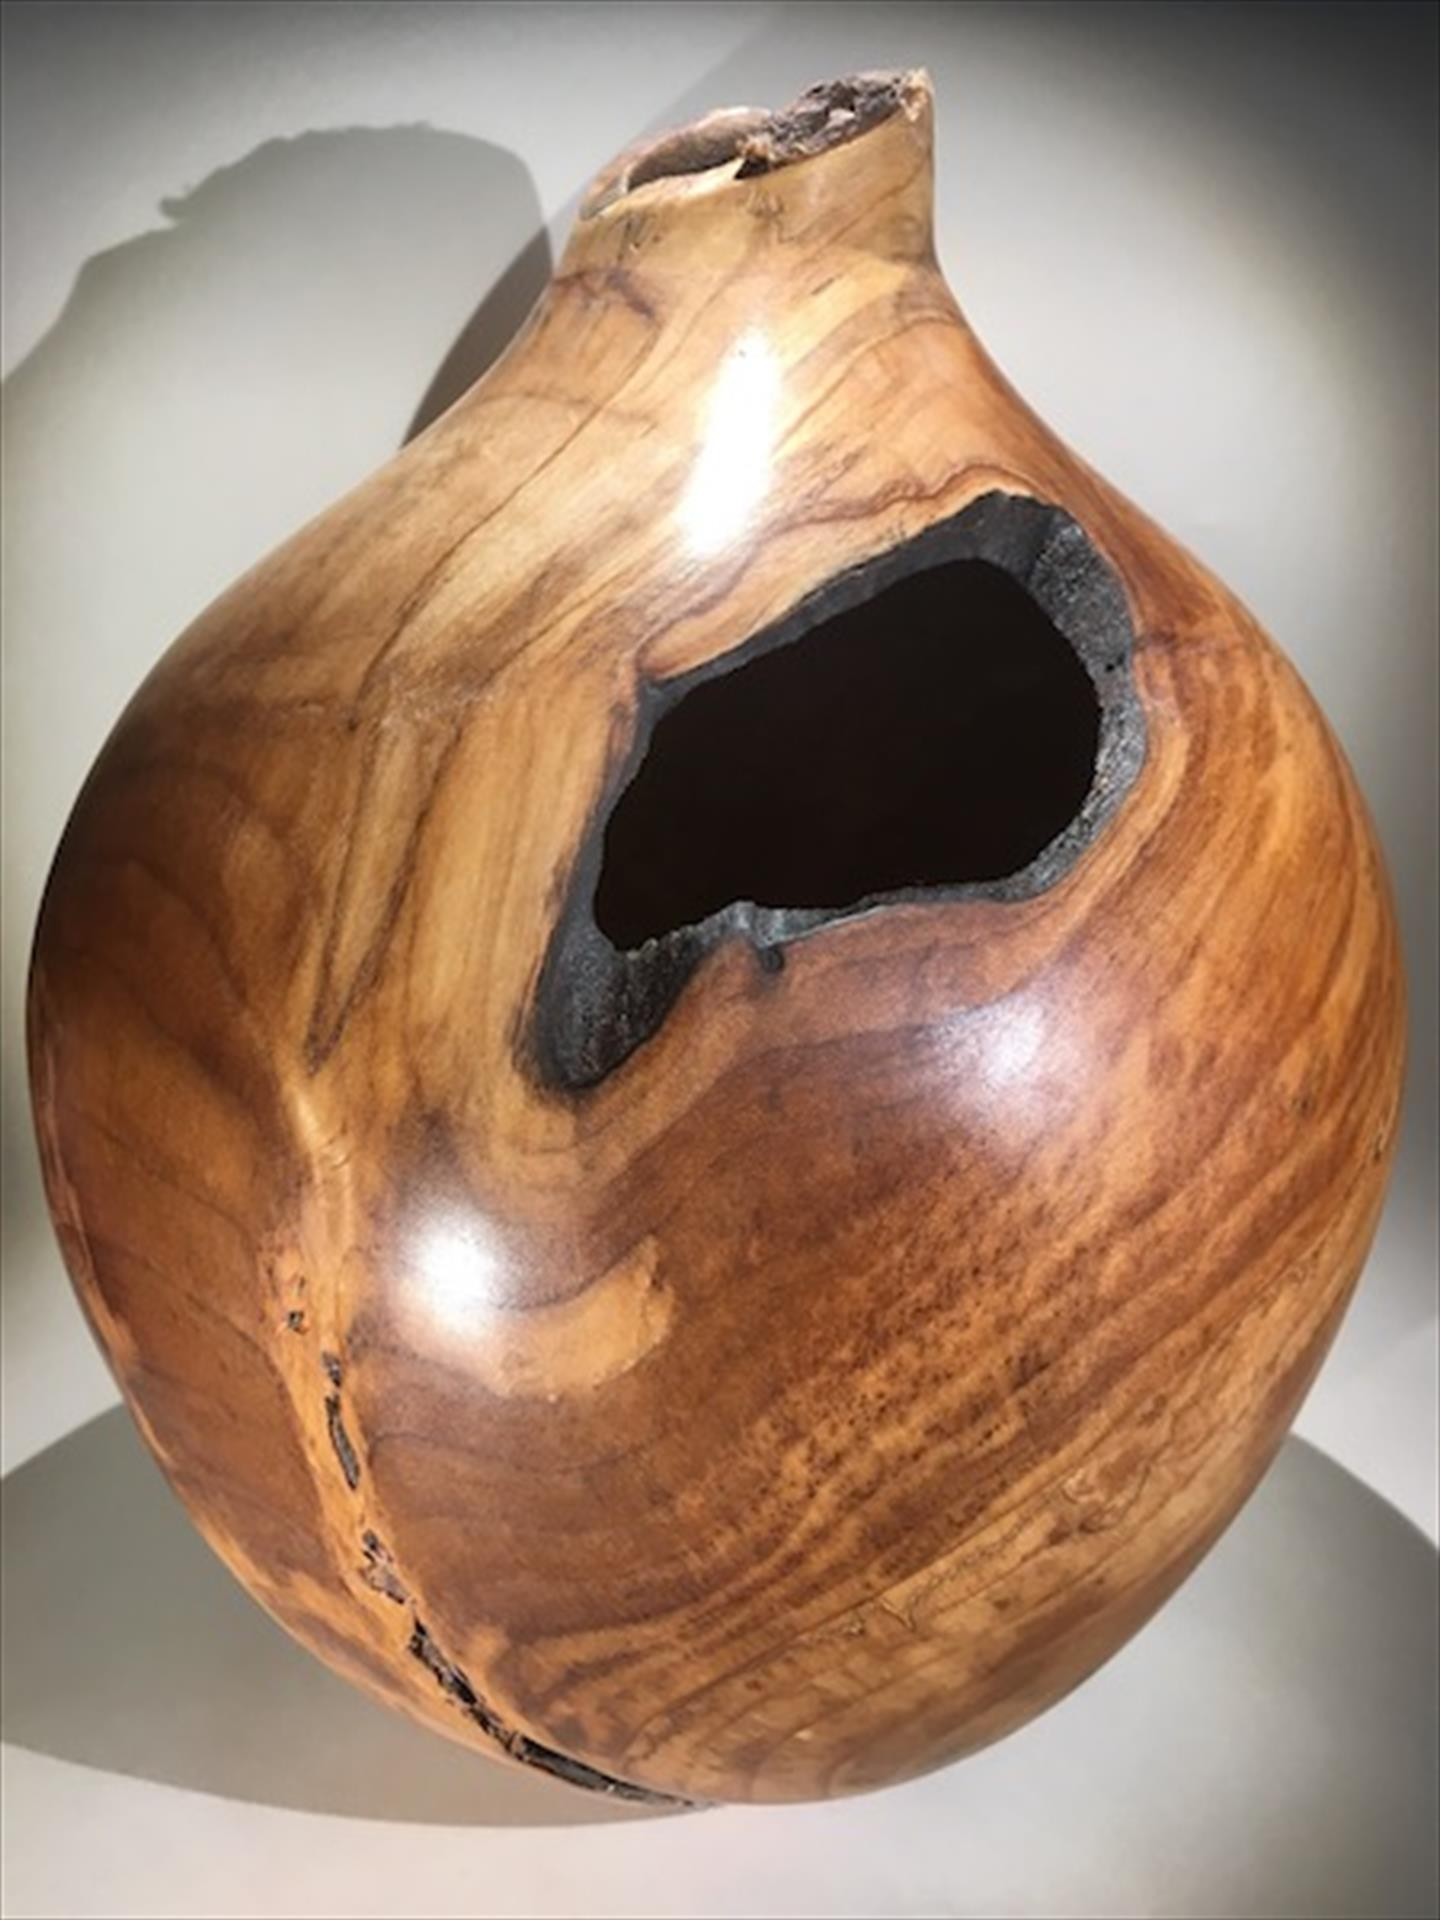 Max McBurnett, Maple Root Hollow Form with Natural Edge